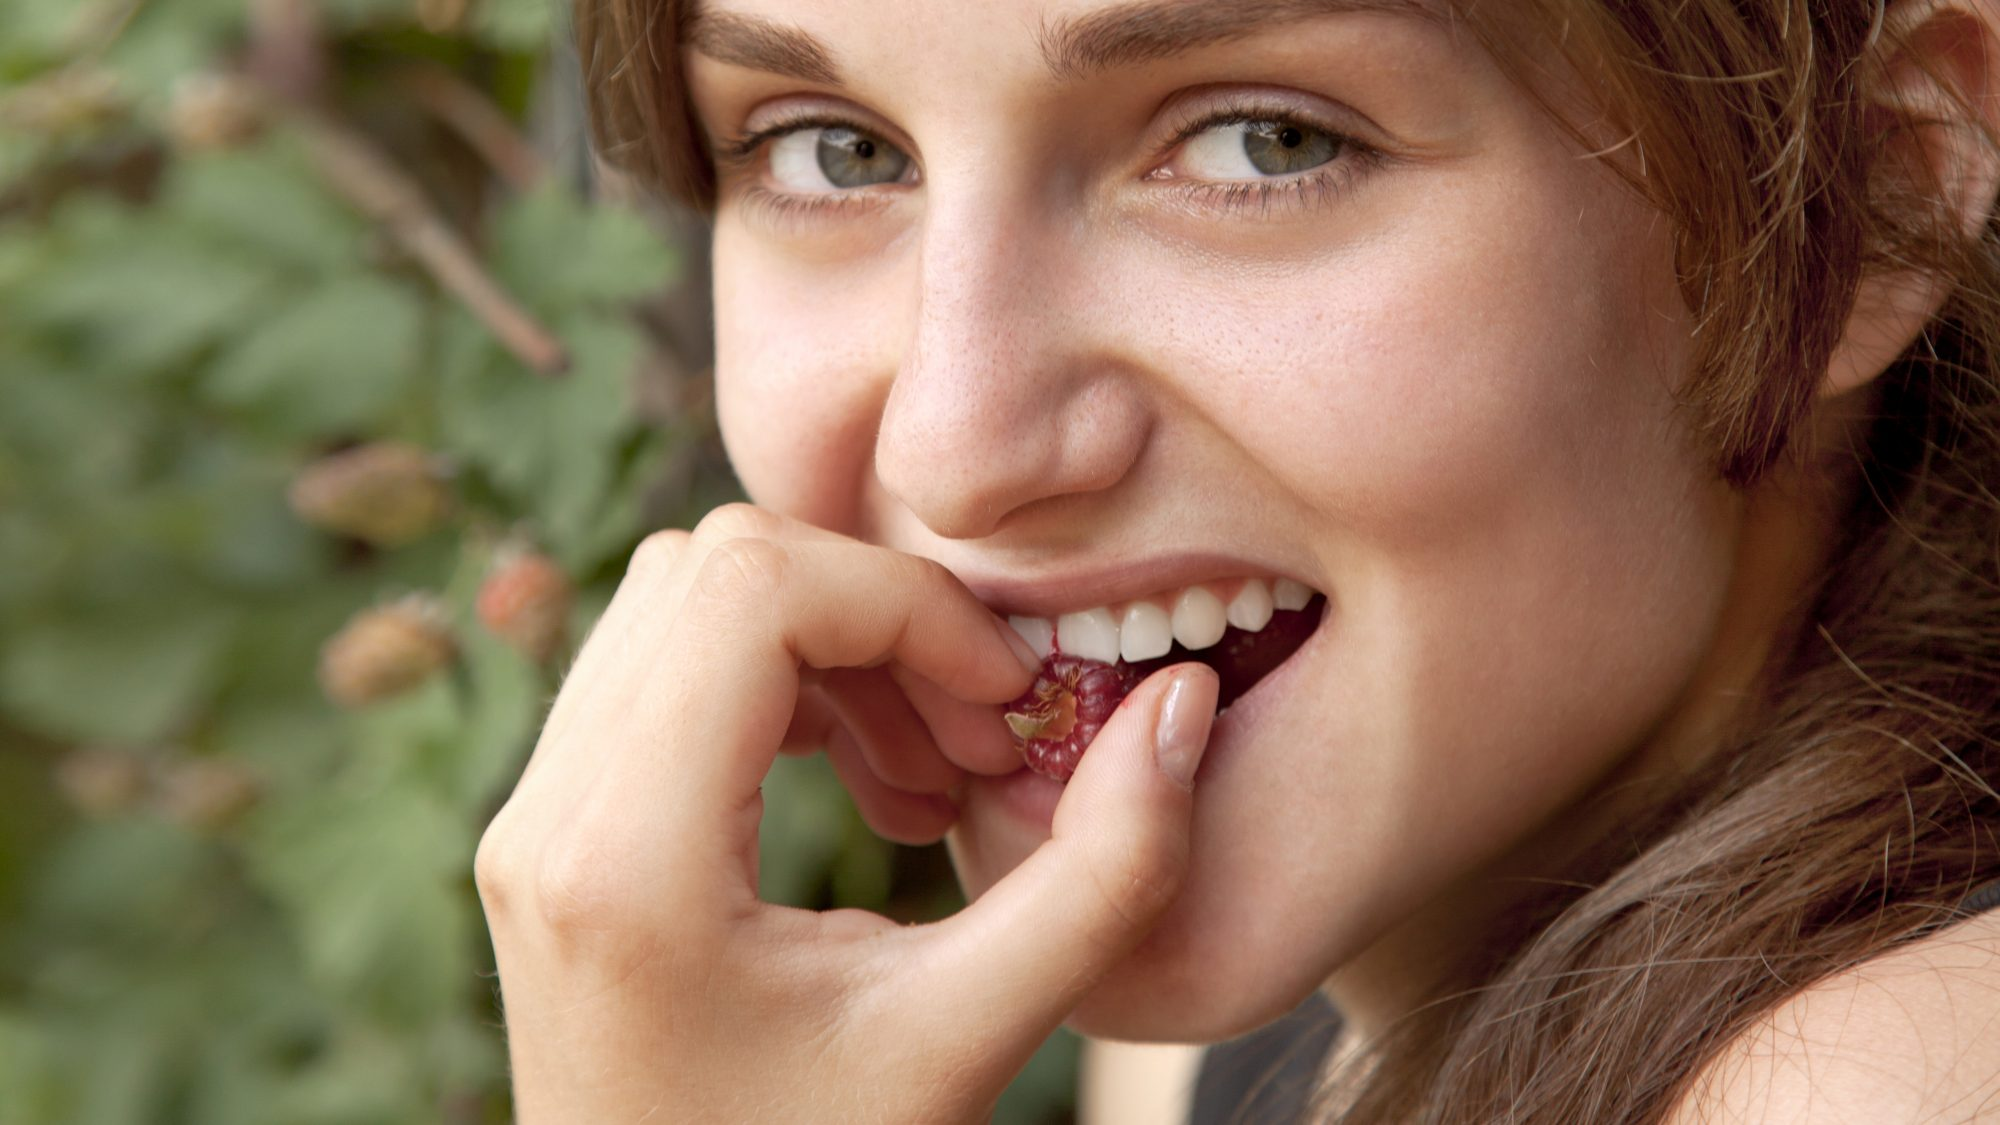 sensitive-teeth-causes-and-fixes: woman smiling and biting a raspberry